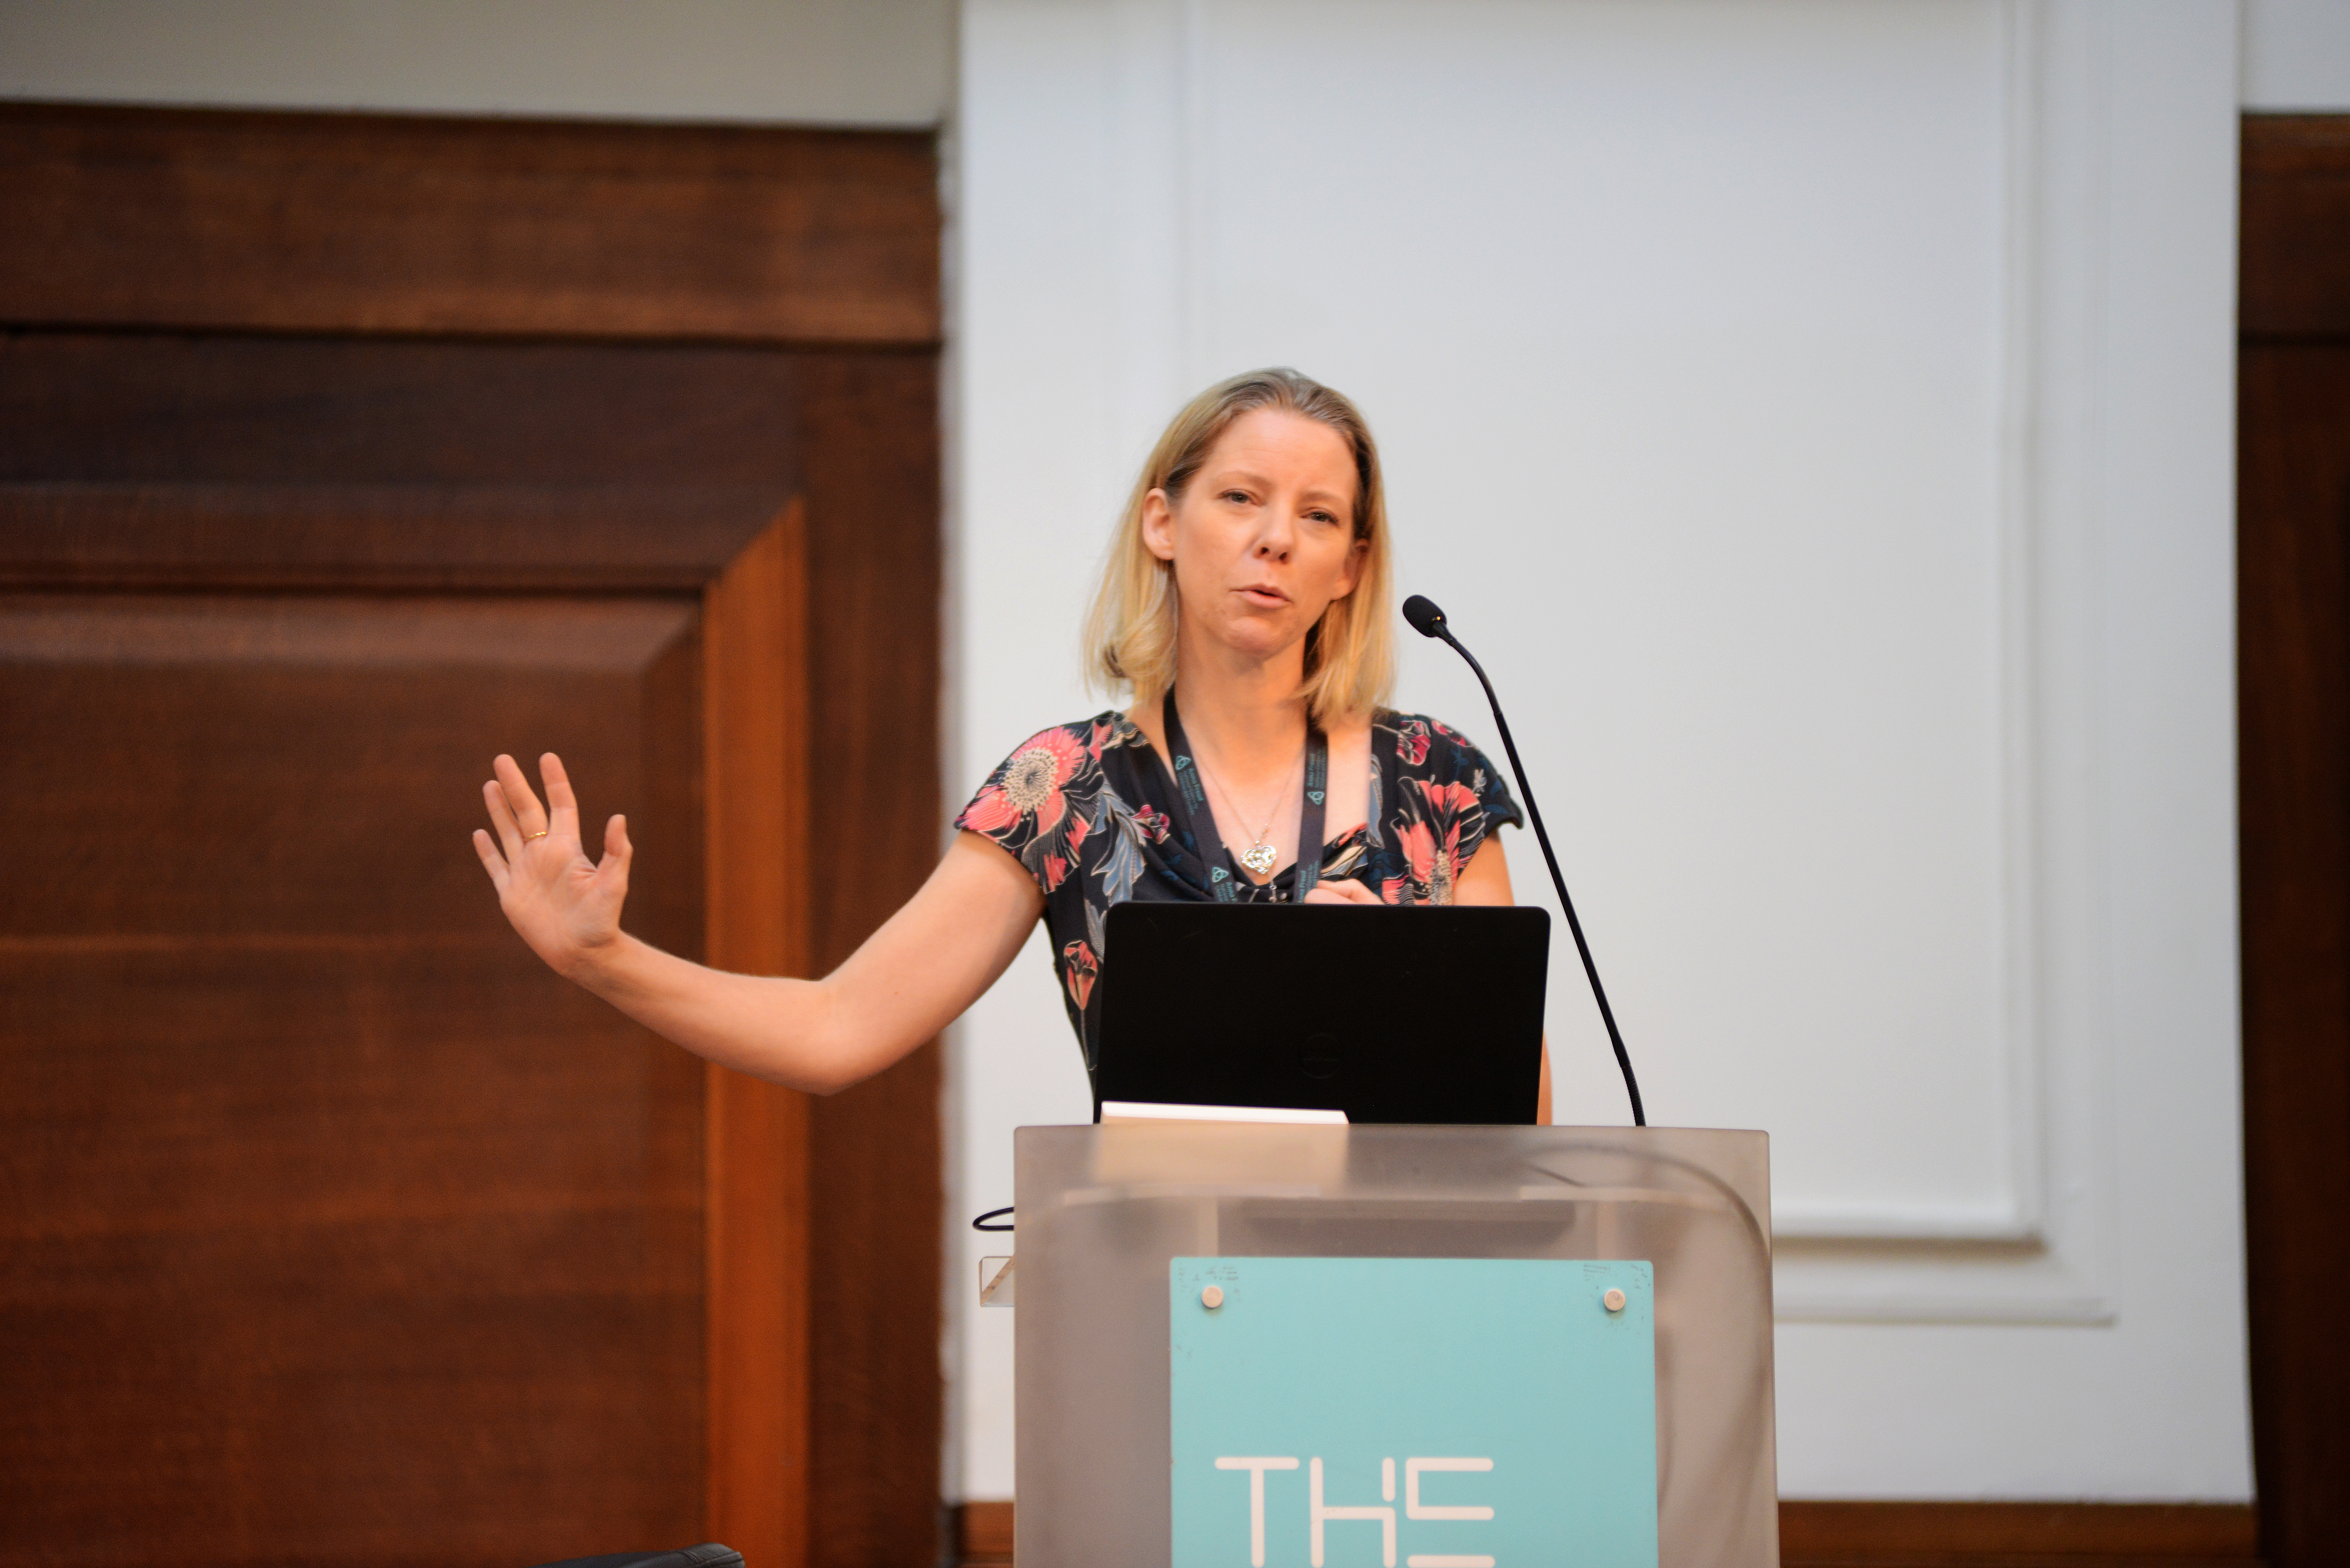 Woman speaking at a lectern